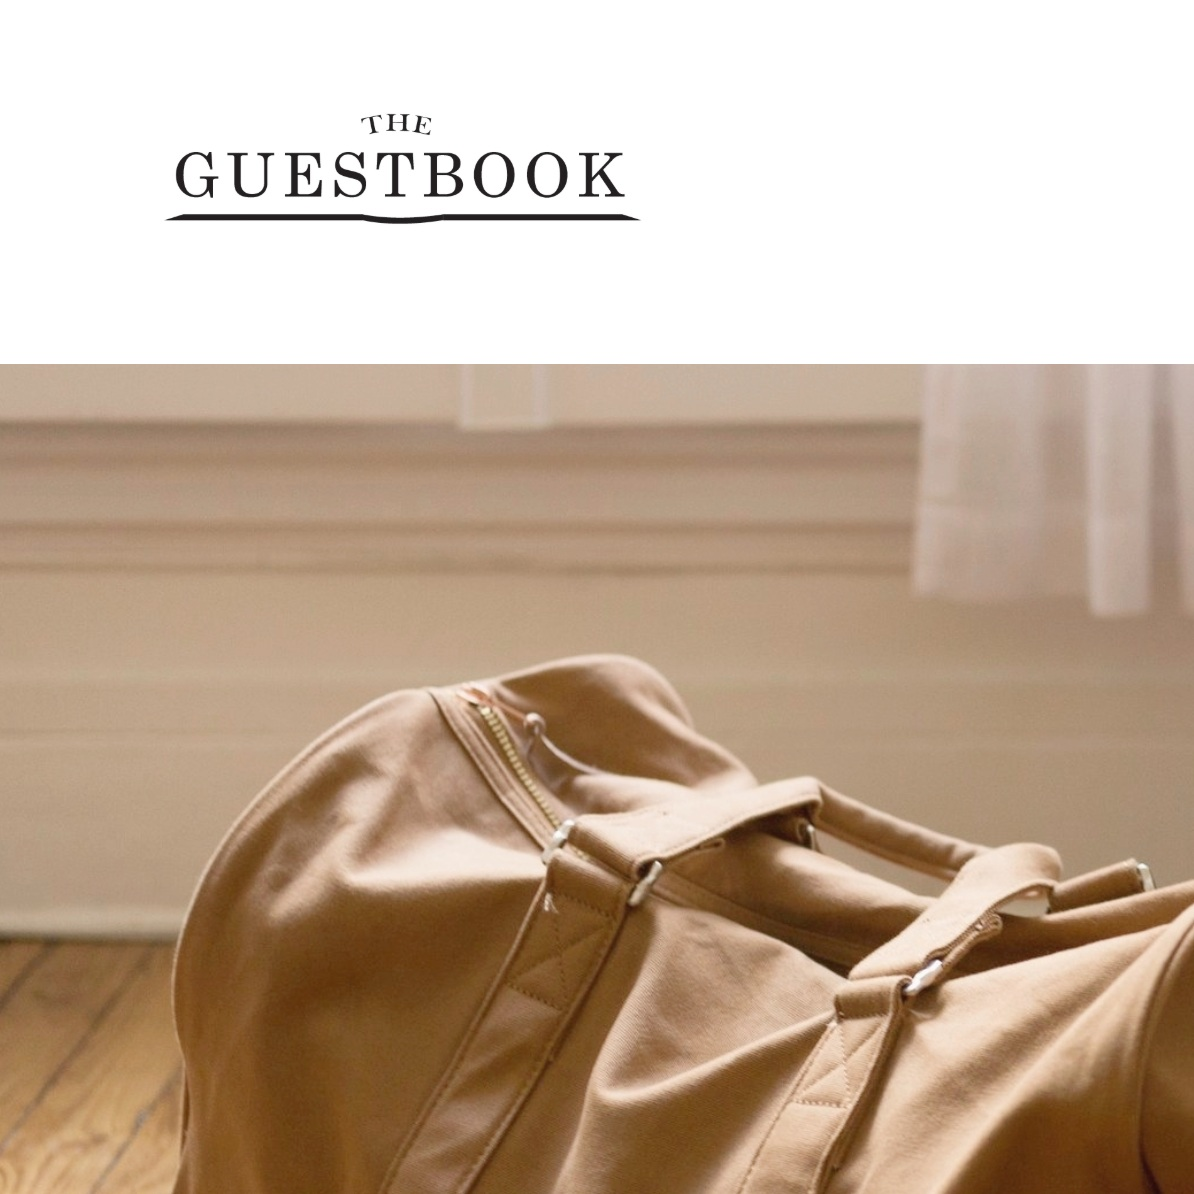 Web Design, The Guestbook